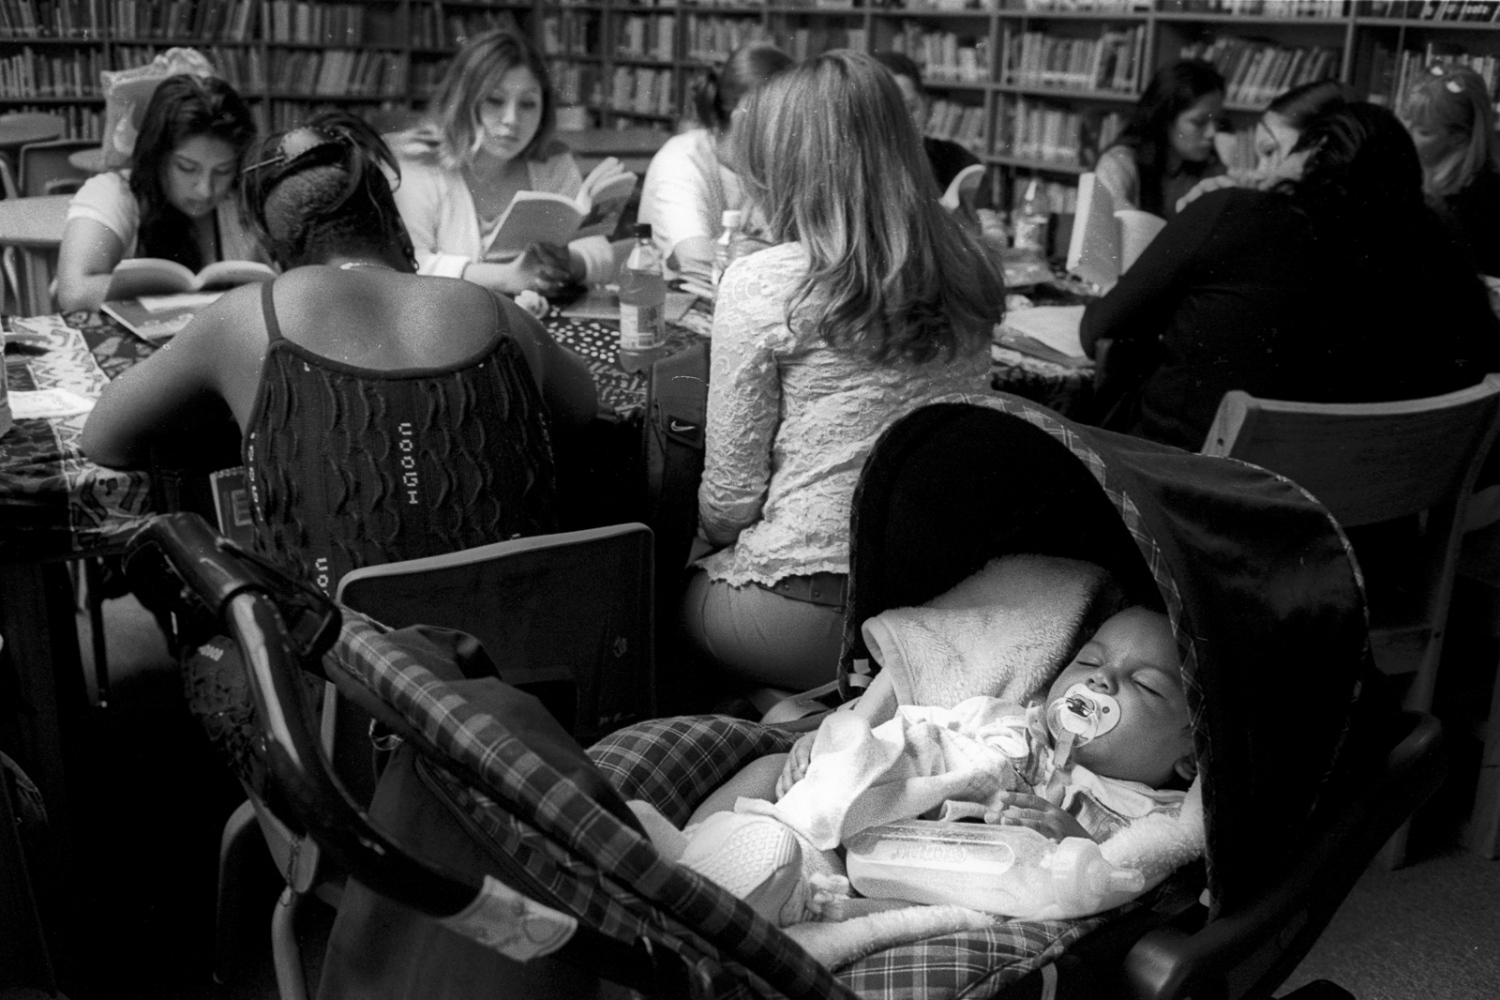 Karen's daughter naps during a girls only writing class in the school library.